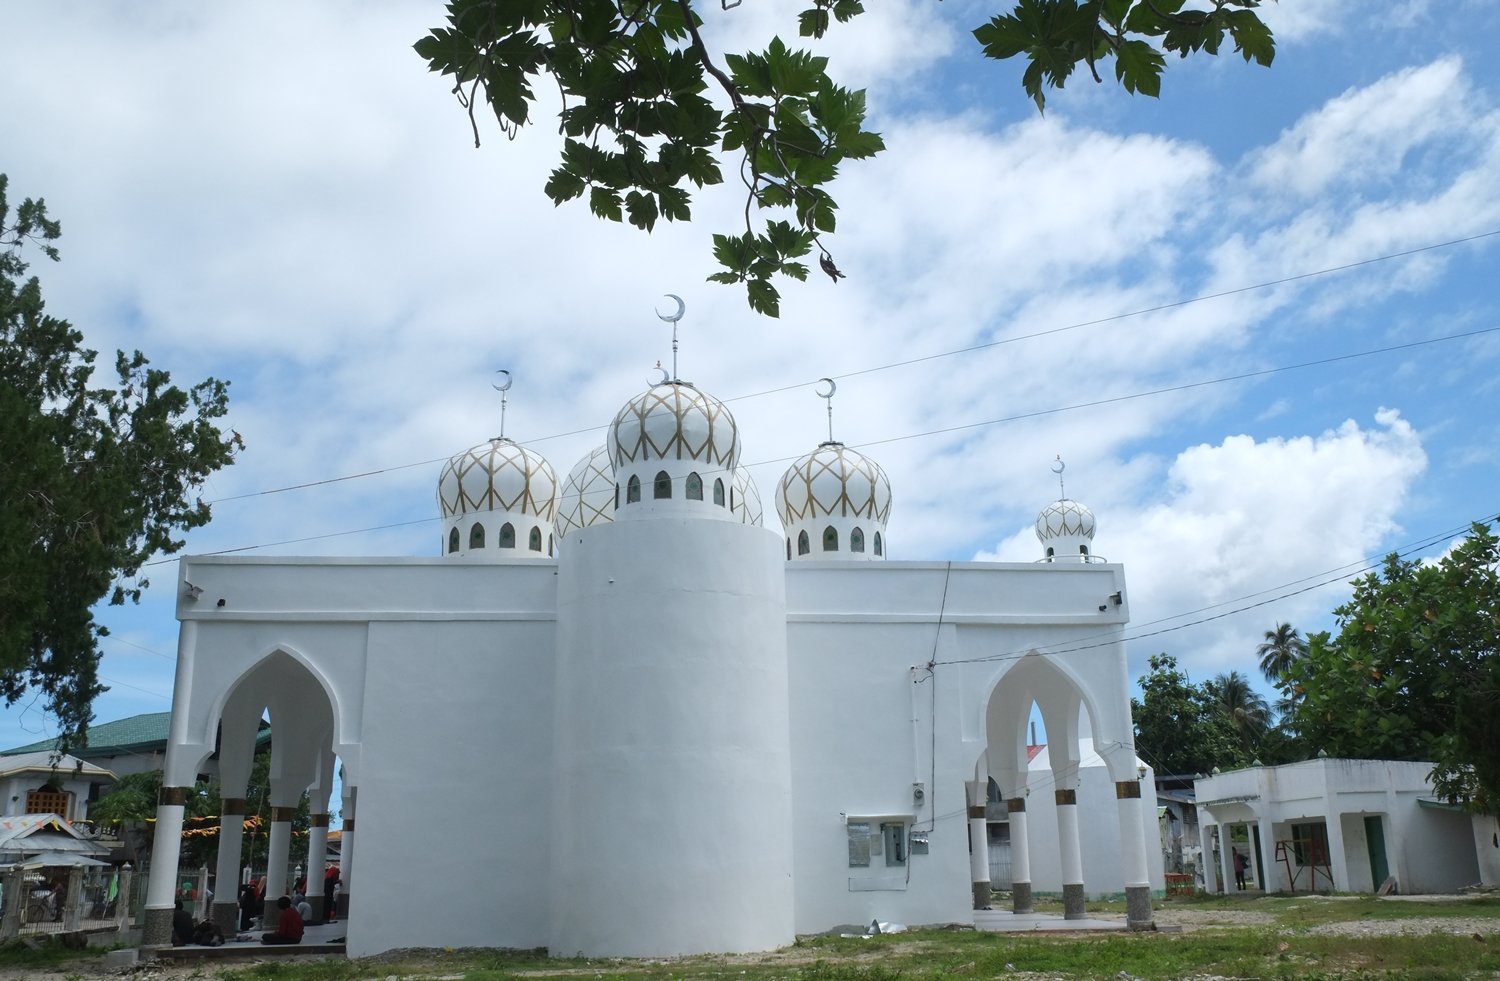 Masjid Sheikh Karimul Makhdum, the oldest mosque in the Philippines